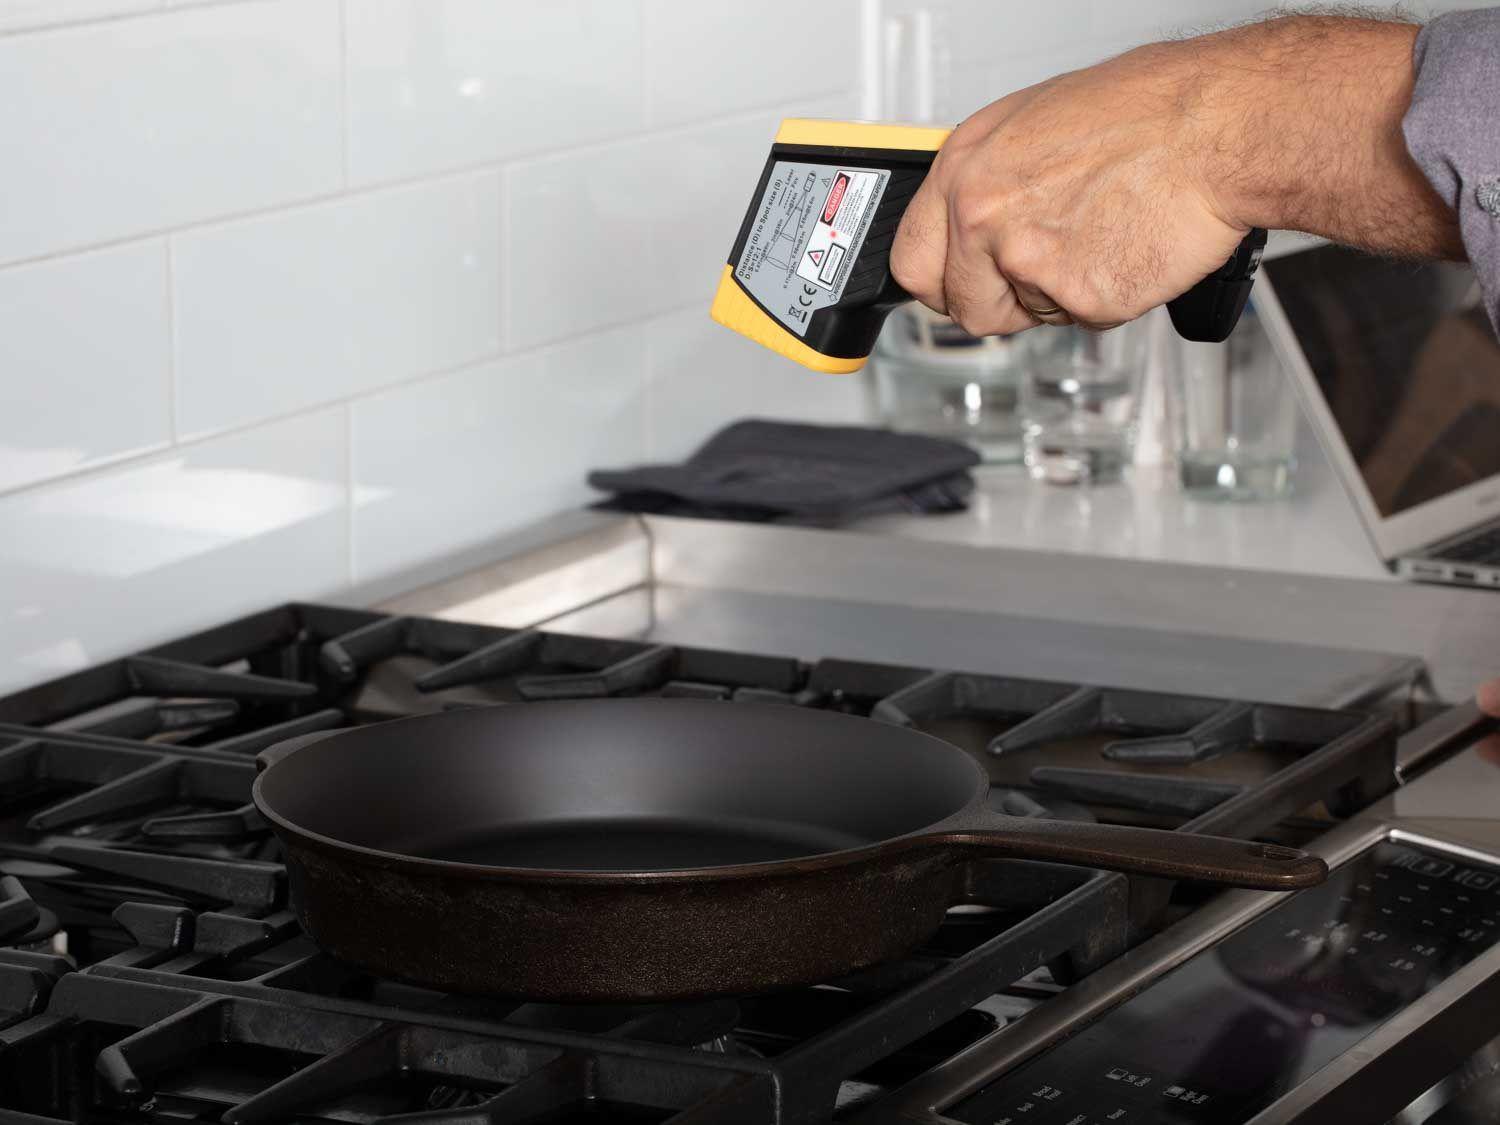 The reviewer uses an infrared thermometer to measure heat on the surface of a cast iron skillet over a moderate flame.